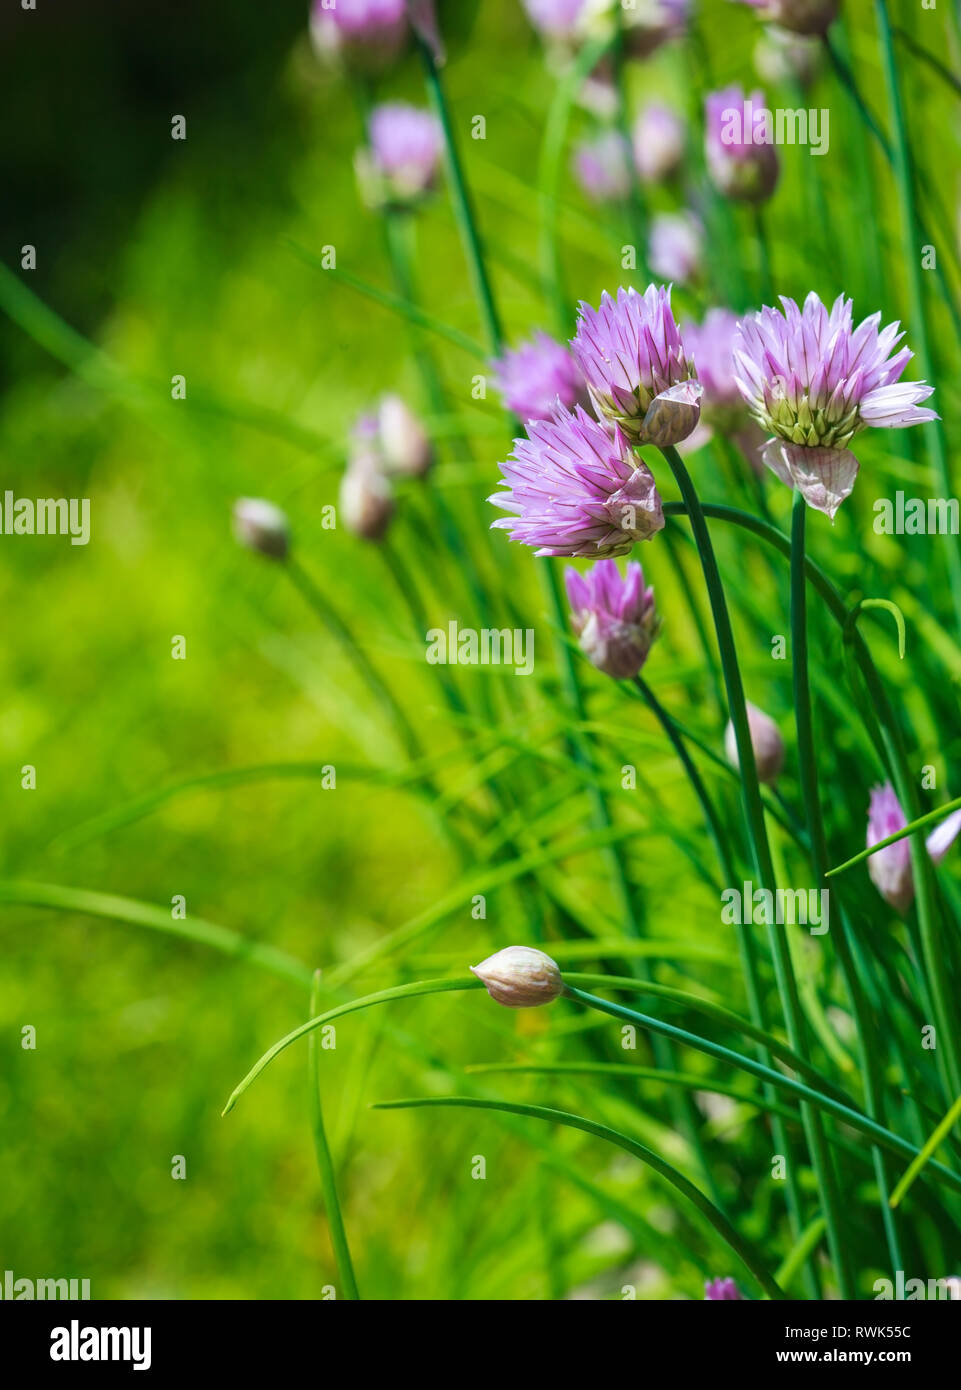 Close-up of Purple Chives blooming in the garden. - Stock Image